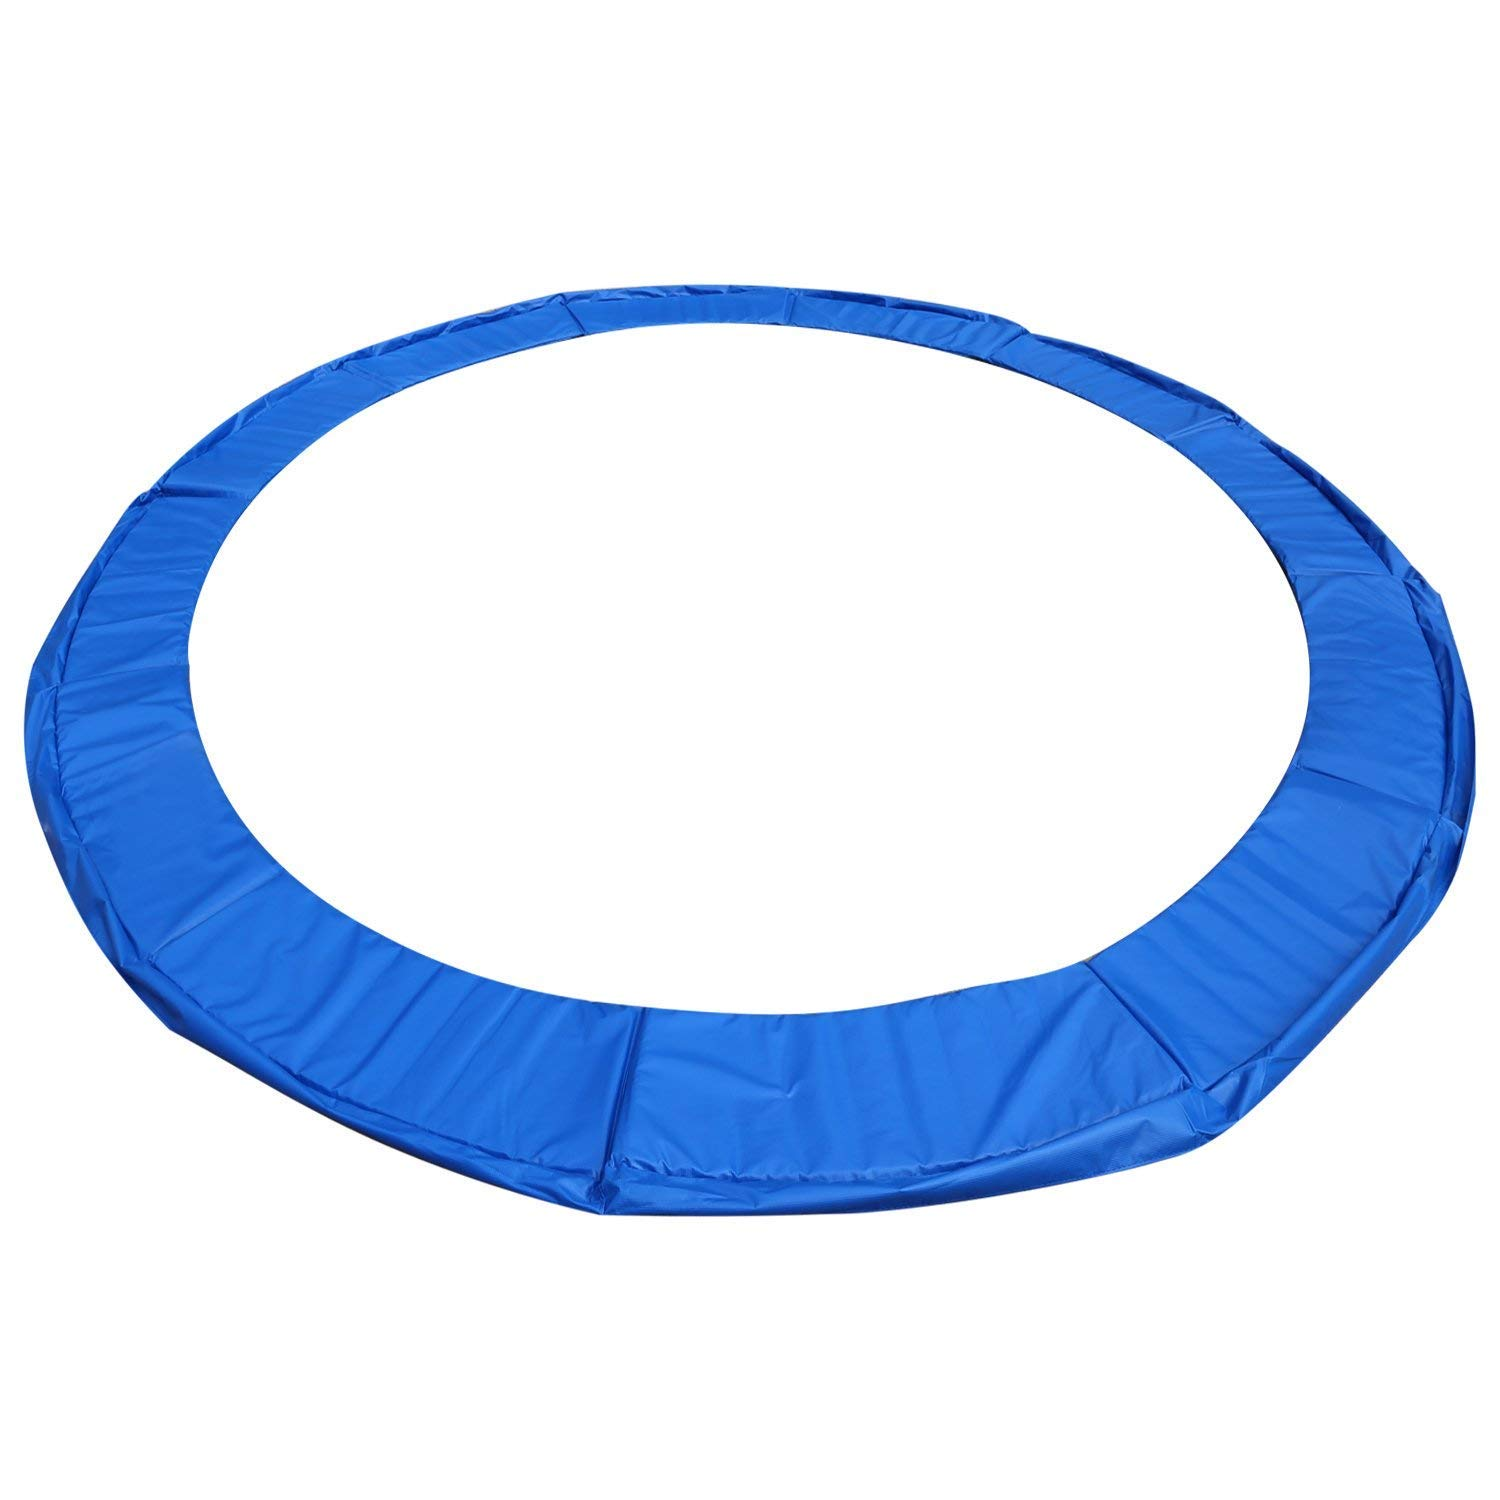 CHISTAR Trampoline Replacement Safety Pad,Waterproof 12FT 14FT 15FT Trampoline Padding Cover,Replacement Trampoline Surround PVC Pad,Safety Pad Replacement Bounce Frame (Blue, 12FT) by CHISTAR (Image #1)